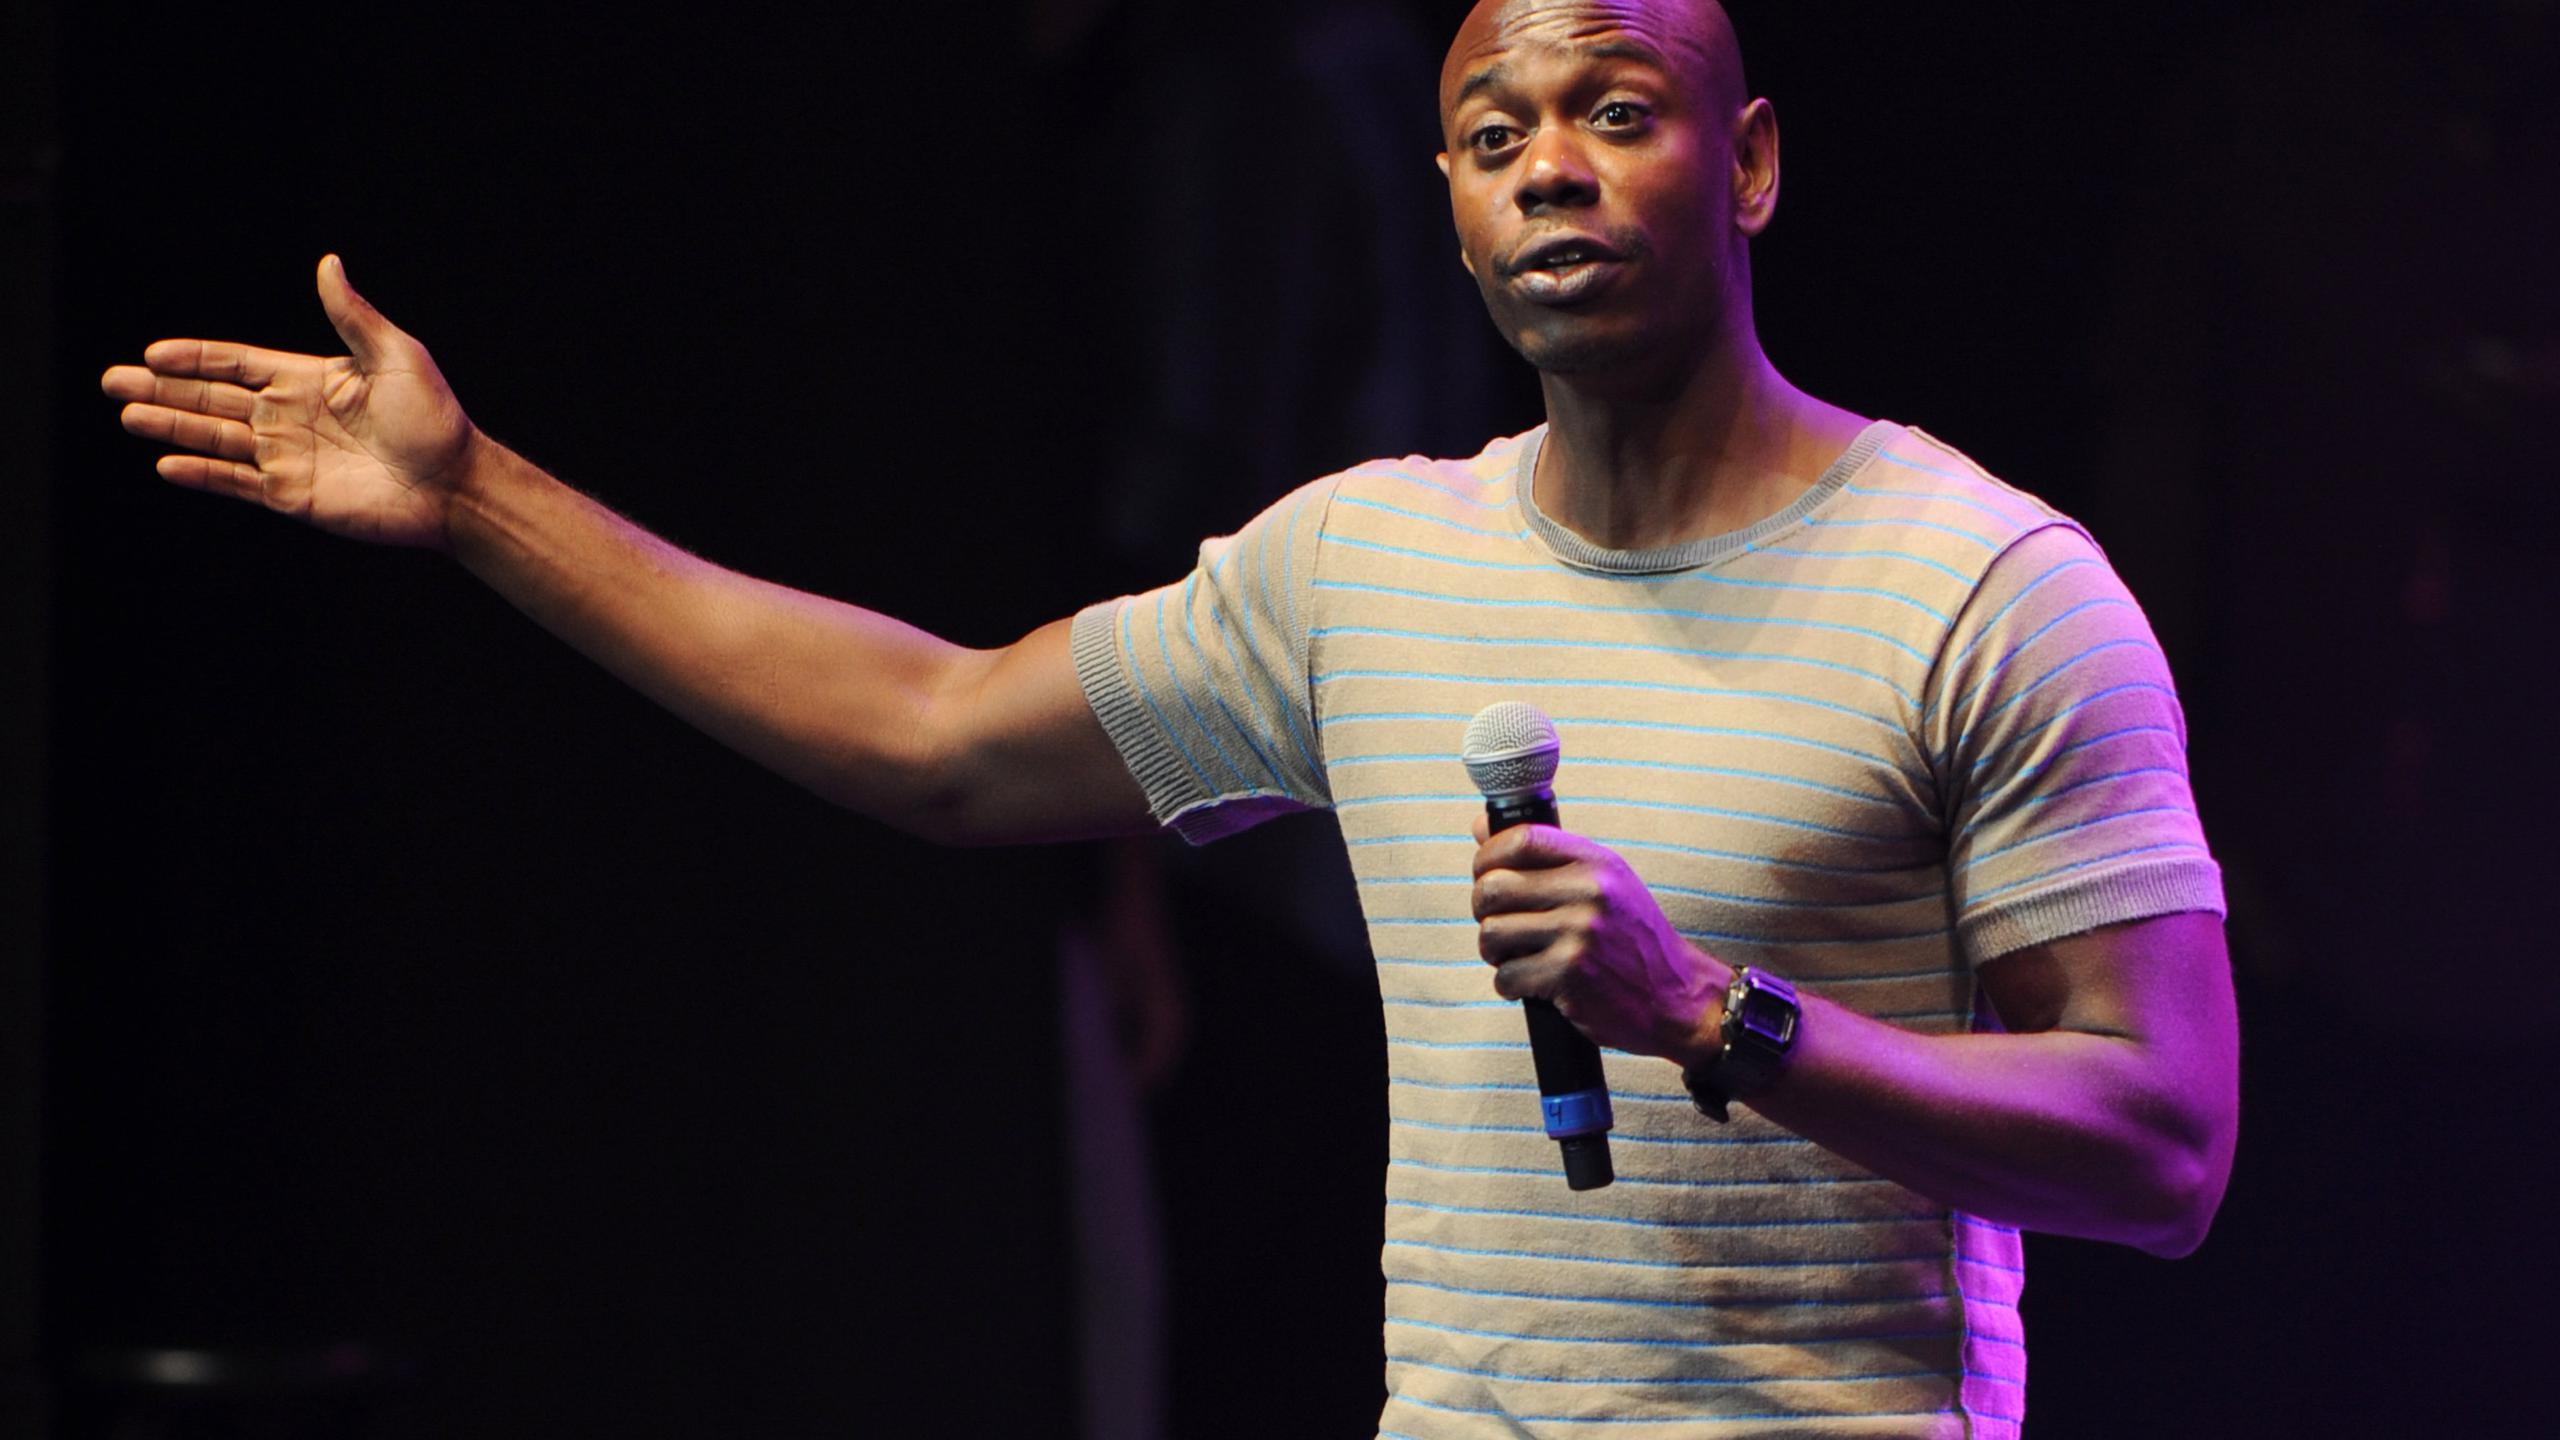 Dave Chappelle Tour 2020.Dave Chappelle Tour Dates 2019 2020 Dave Chappelle Tickets